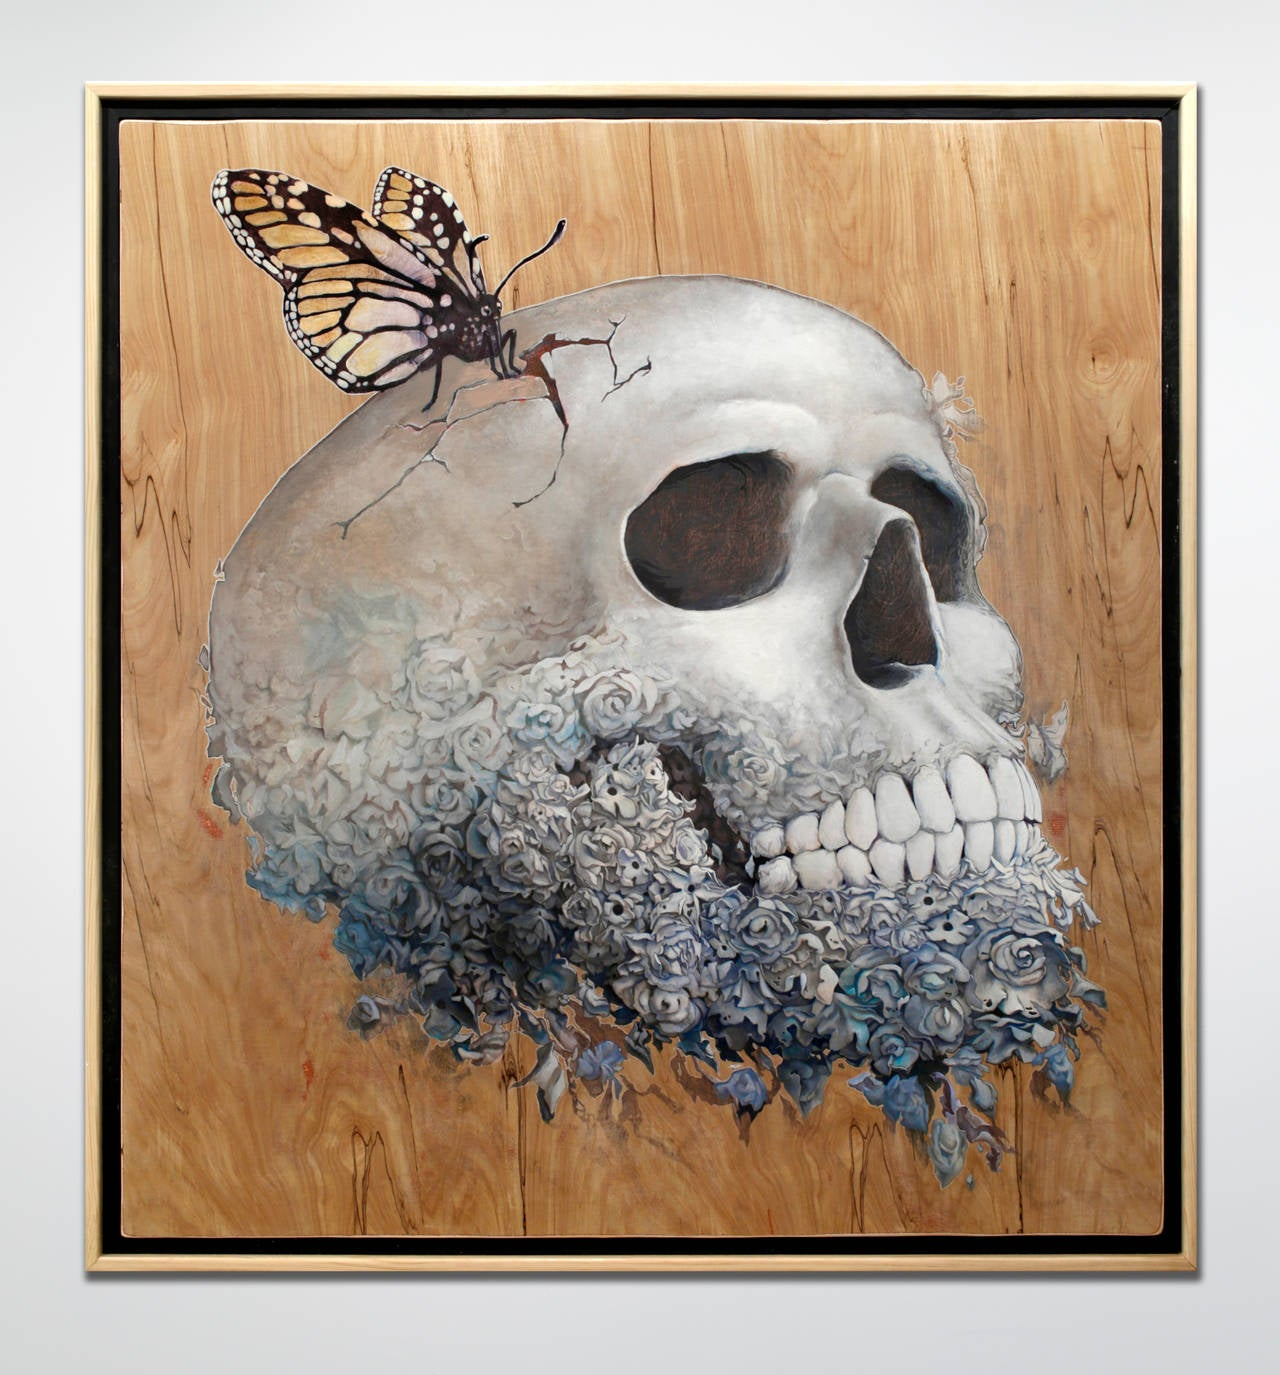 Skull and butterfly painting by Kyle Fisher on birch wood in a handmade wood frame measuring 55in x 51in.  Artist Statement // My works evaluate and challenge the process by which the observable is identified and recorded. The iconography we gather